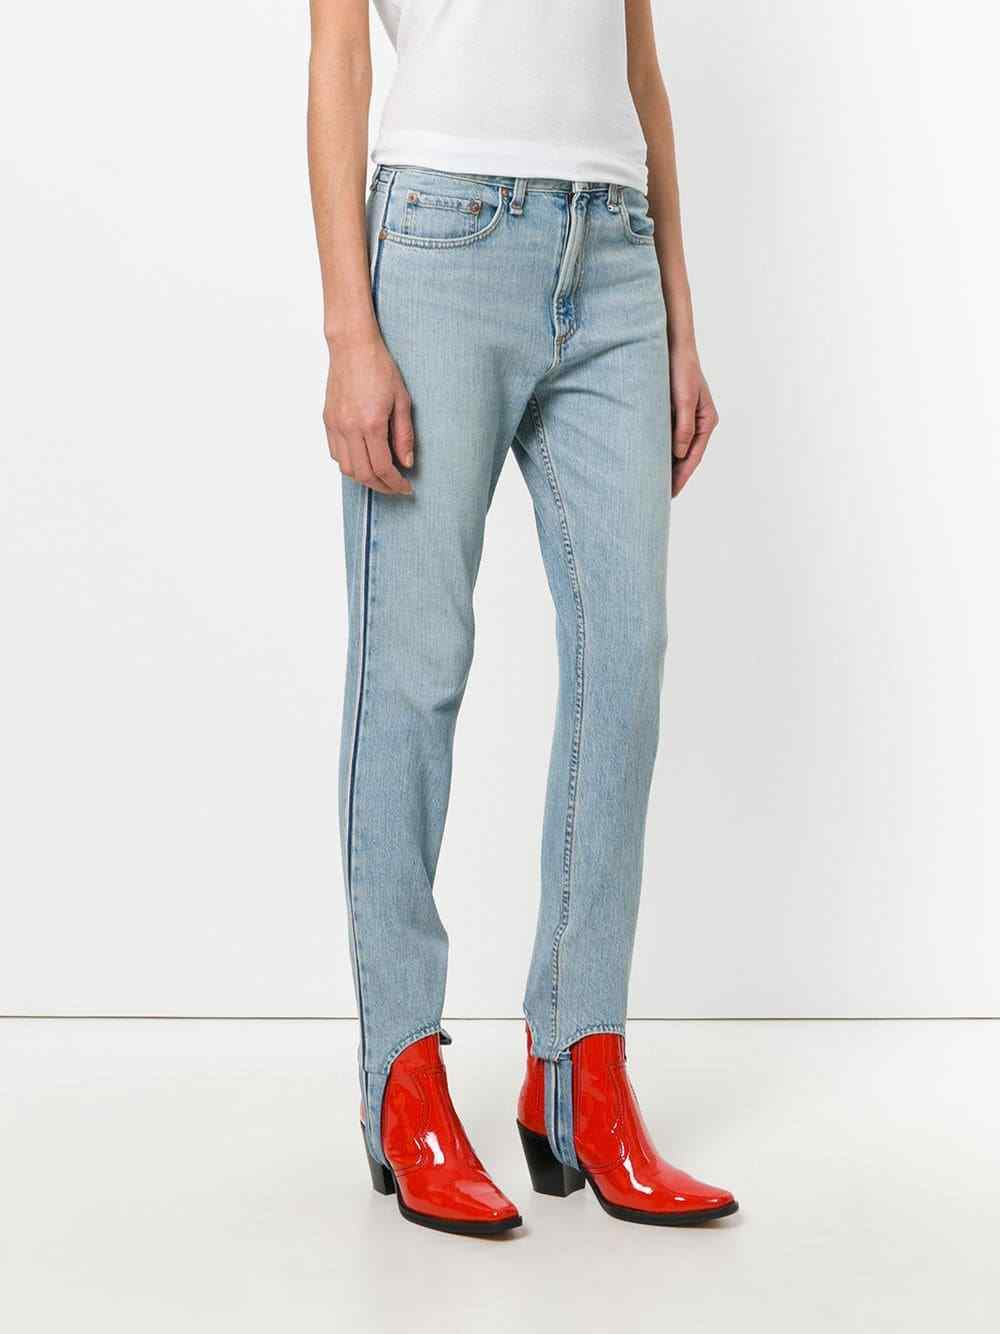 Rag & bone Olivia Stirrup Size 24 Women's Denim Jeans Pinebox Wash